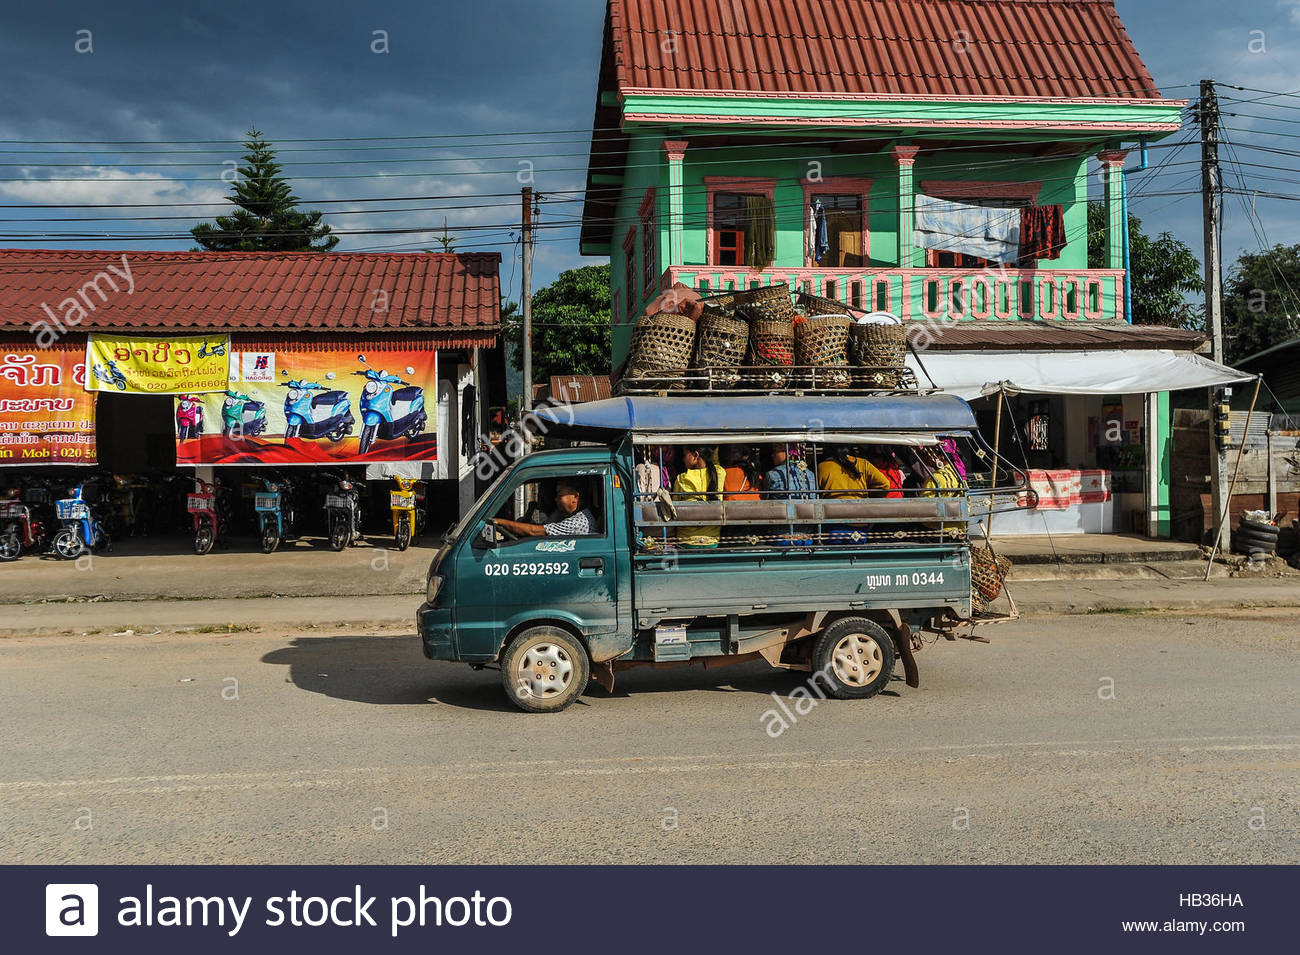 Street of Luang Nam Tha and public transport, Lao PDR - Stock Image